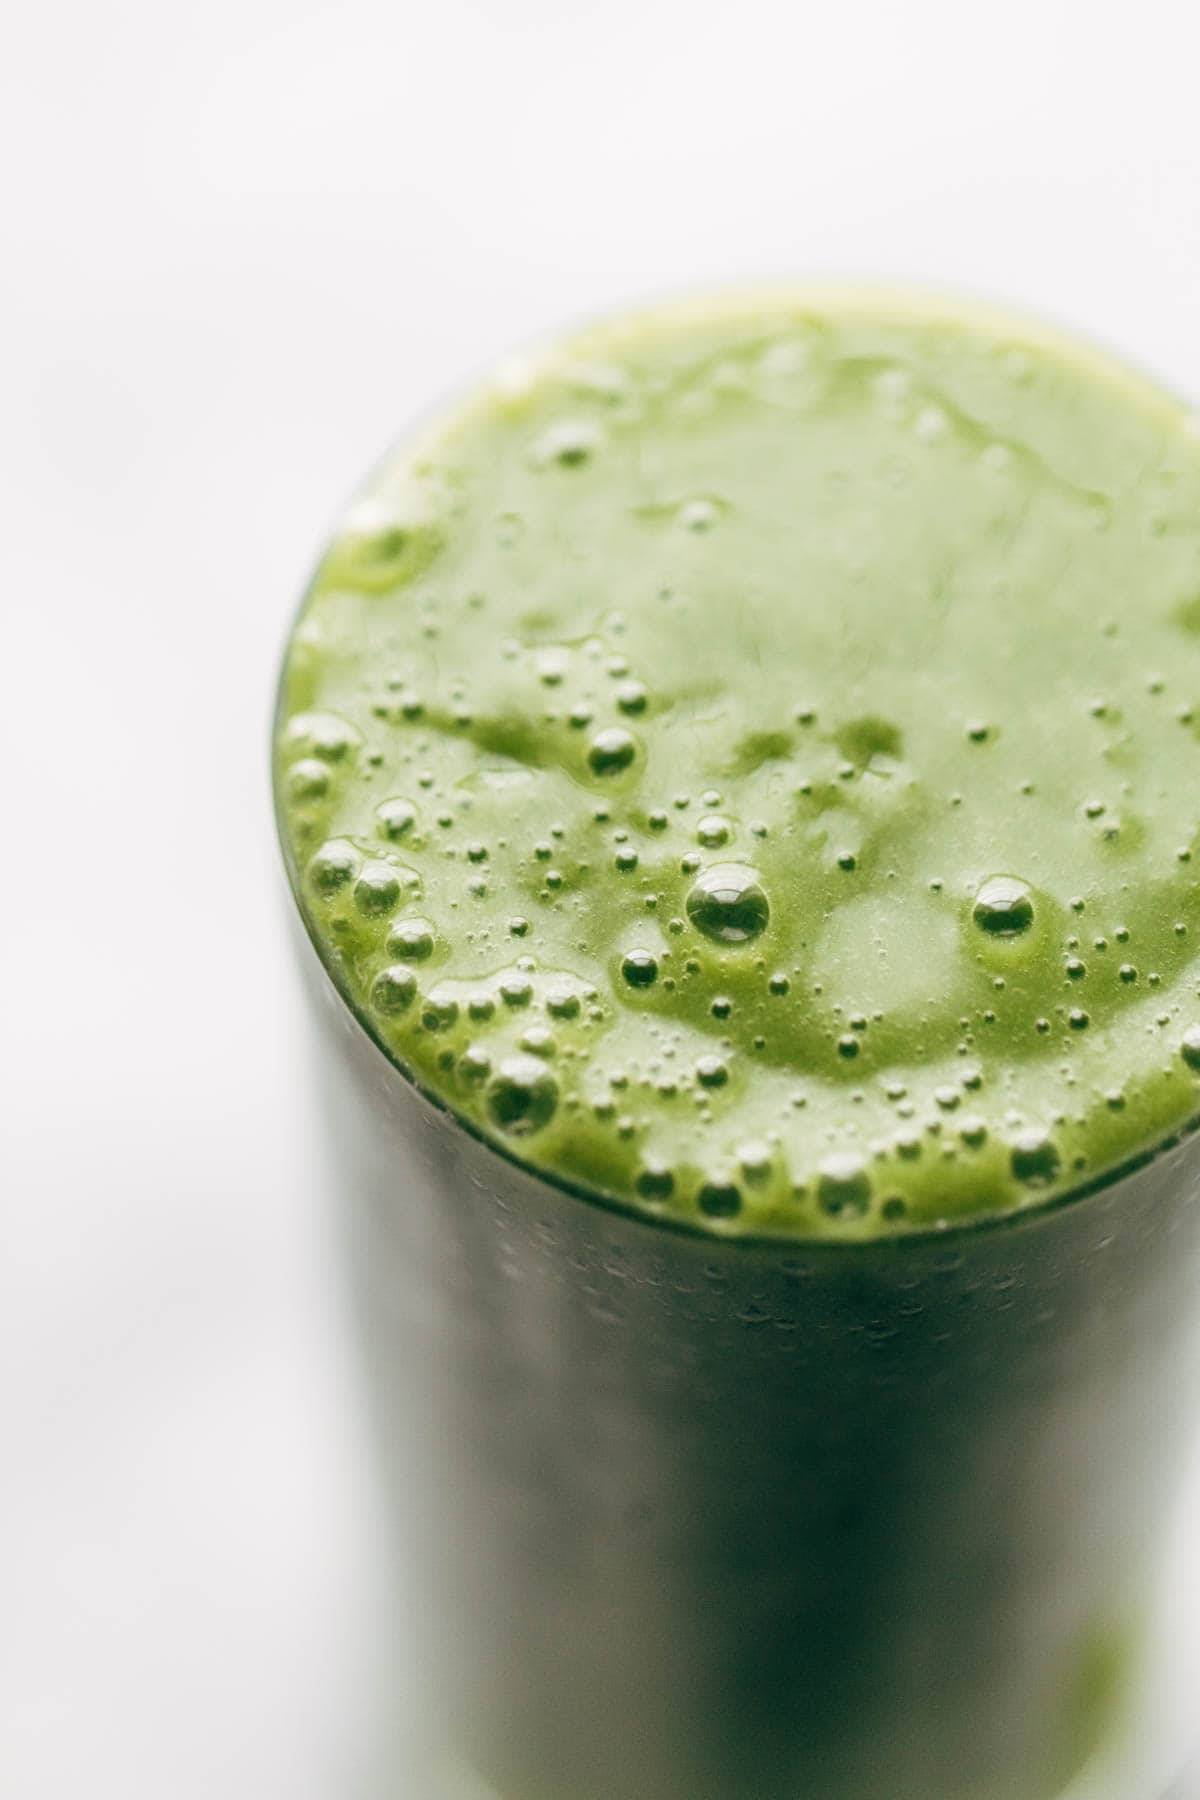 Green smoothie in glass.